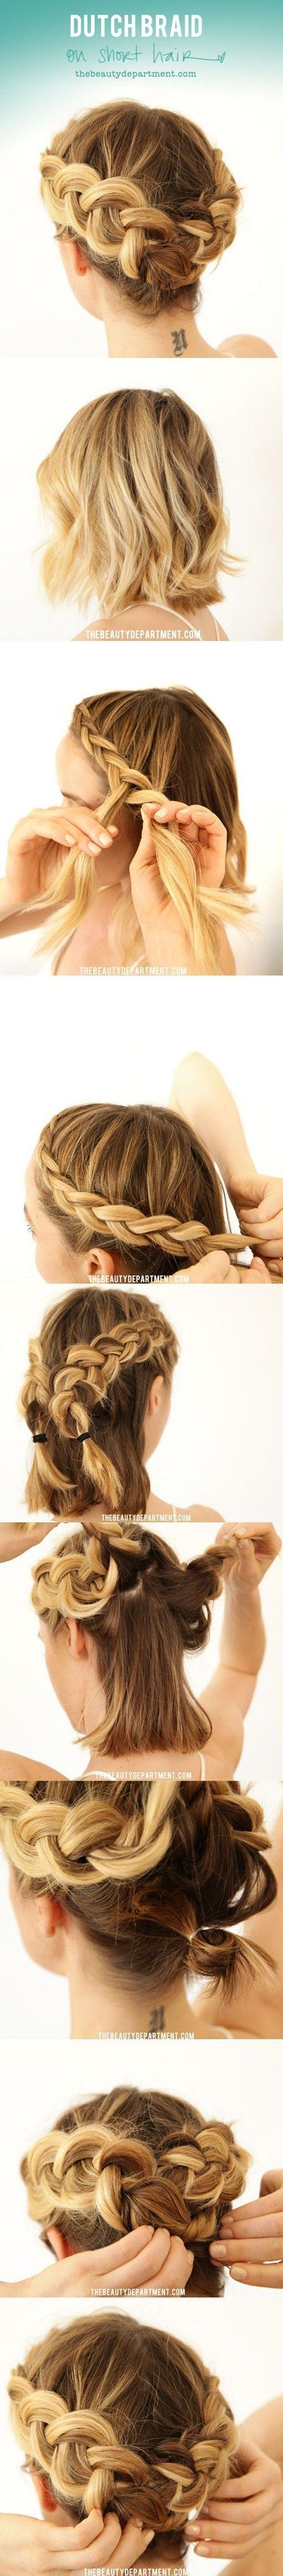 Crown Braid For Bob Length Hair Tutorial. Now if only I could figure out how to do this